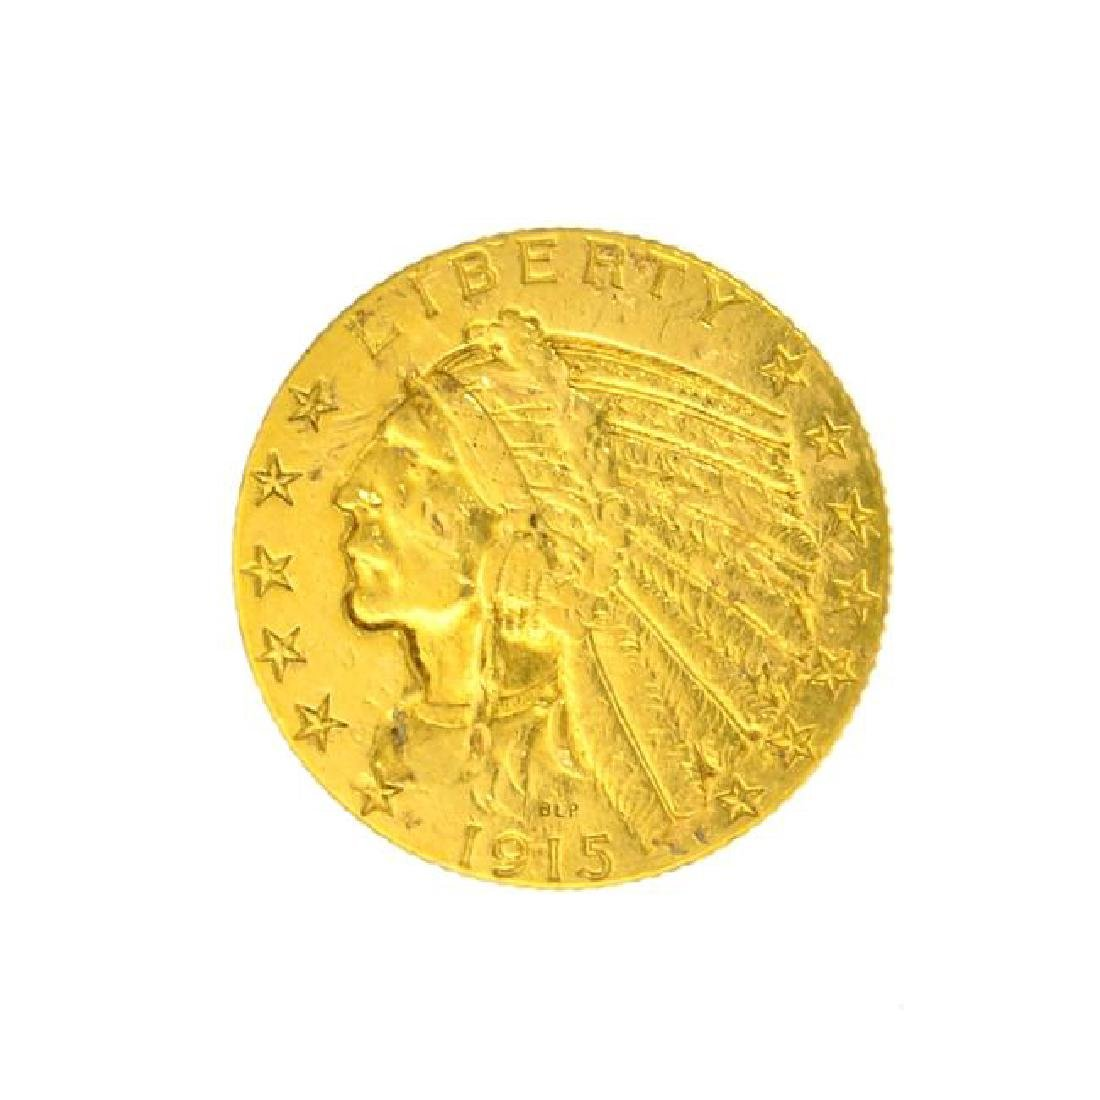 1915 $5 U.S. Indian Head Gold Coin - Great Investment